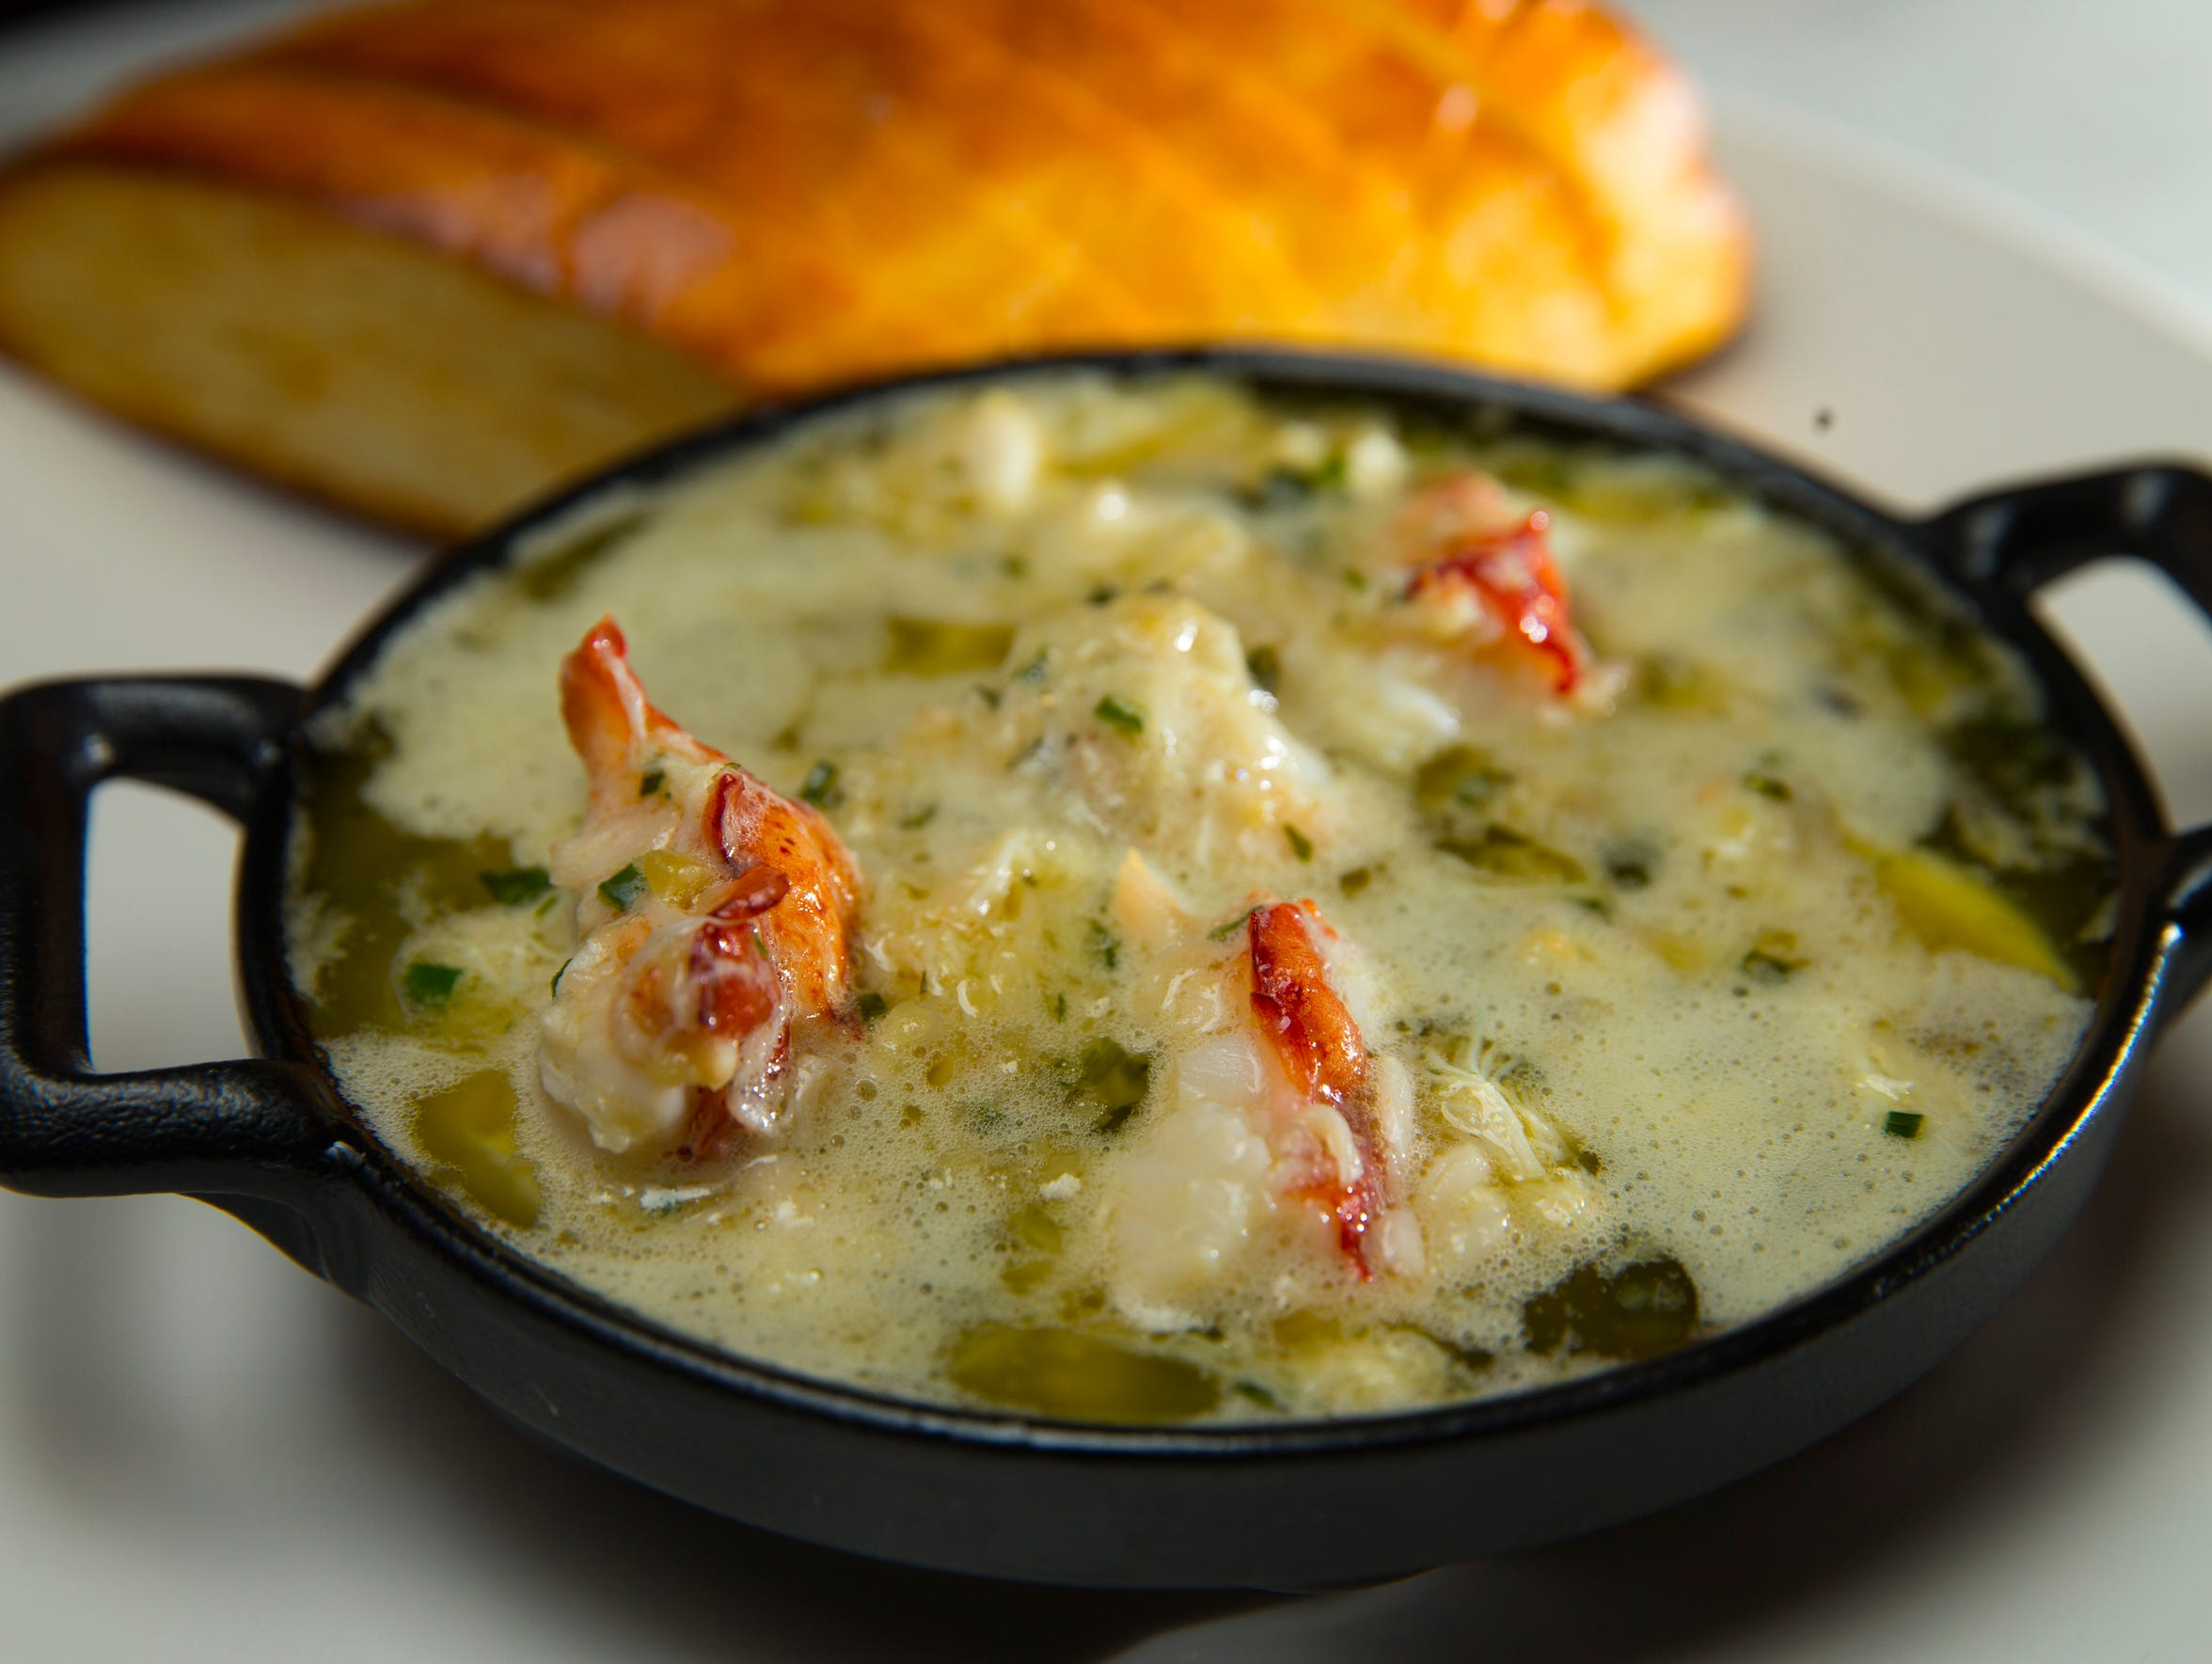 Lobster potholes, lobster and crab drenched in garlic